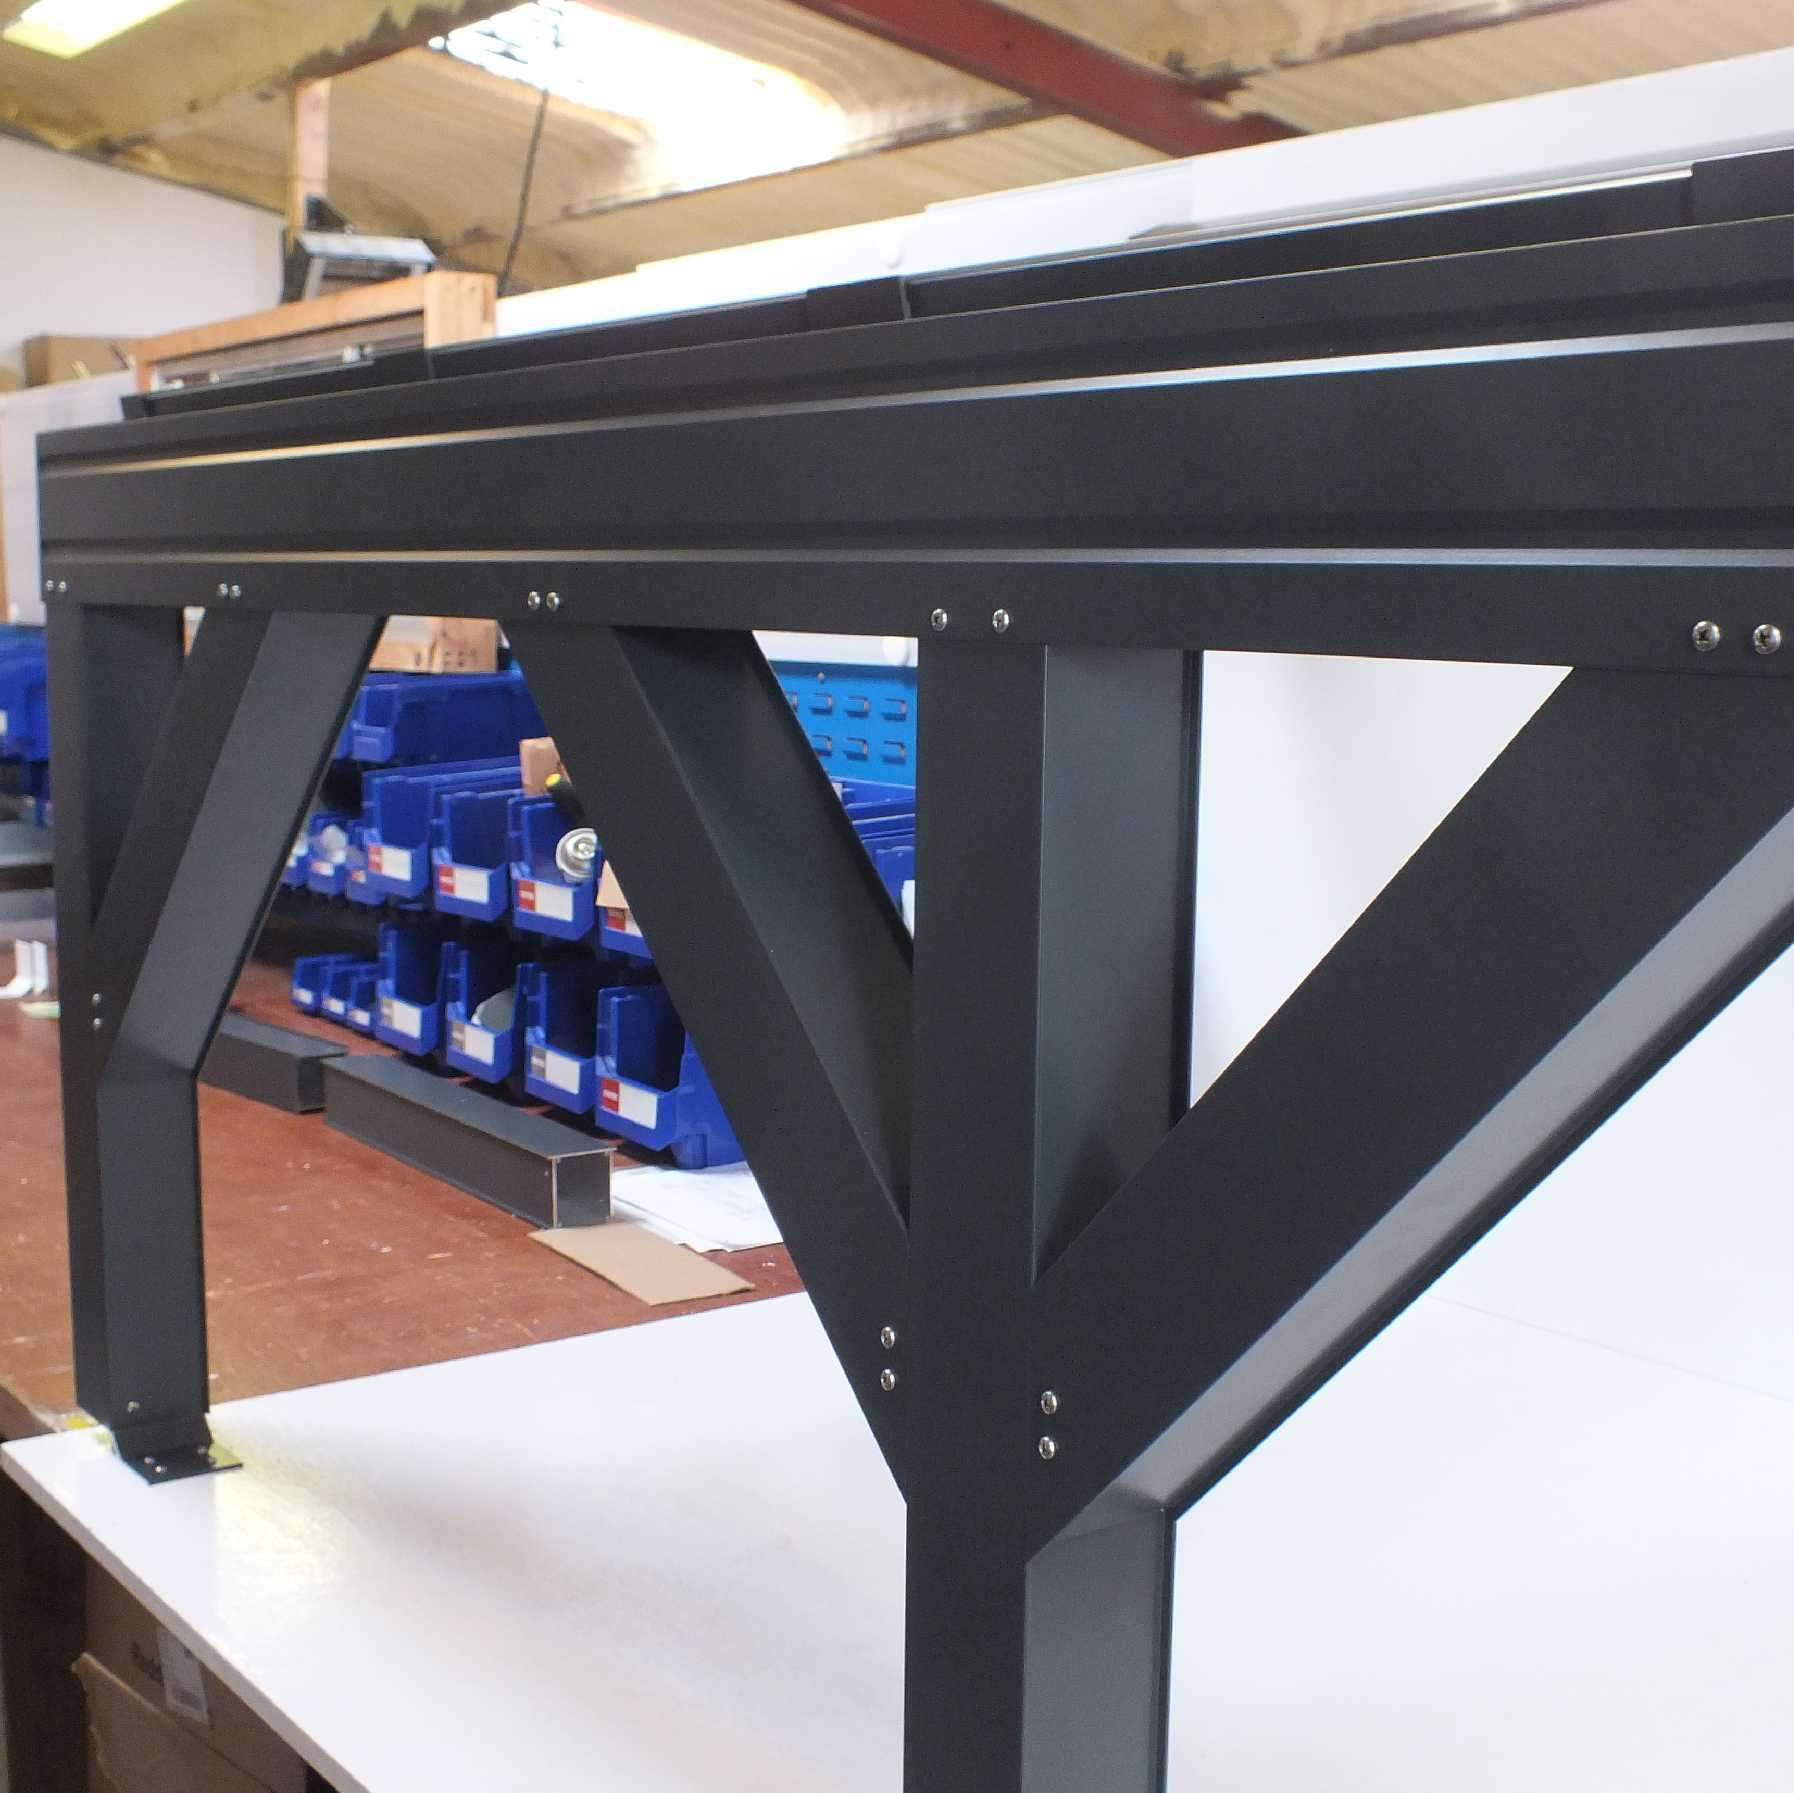 Affordable Omega Smart Lean-To Canopy, Anthracite Grey, UNGLAZED for 6mm Glazing - 9.8m (W) x 1.5m (P), (5) Supporting Posts